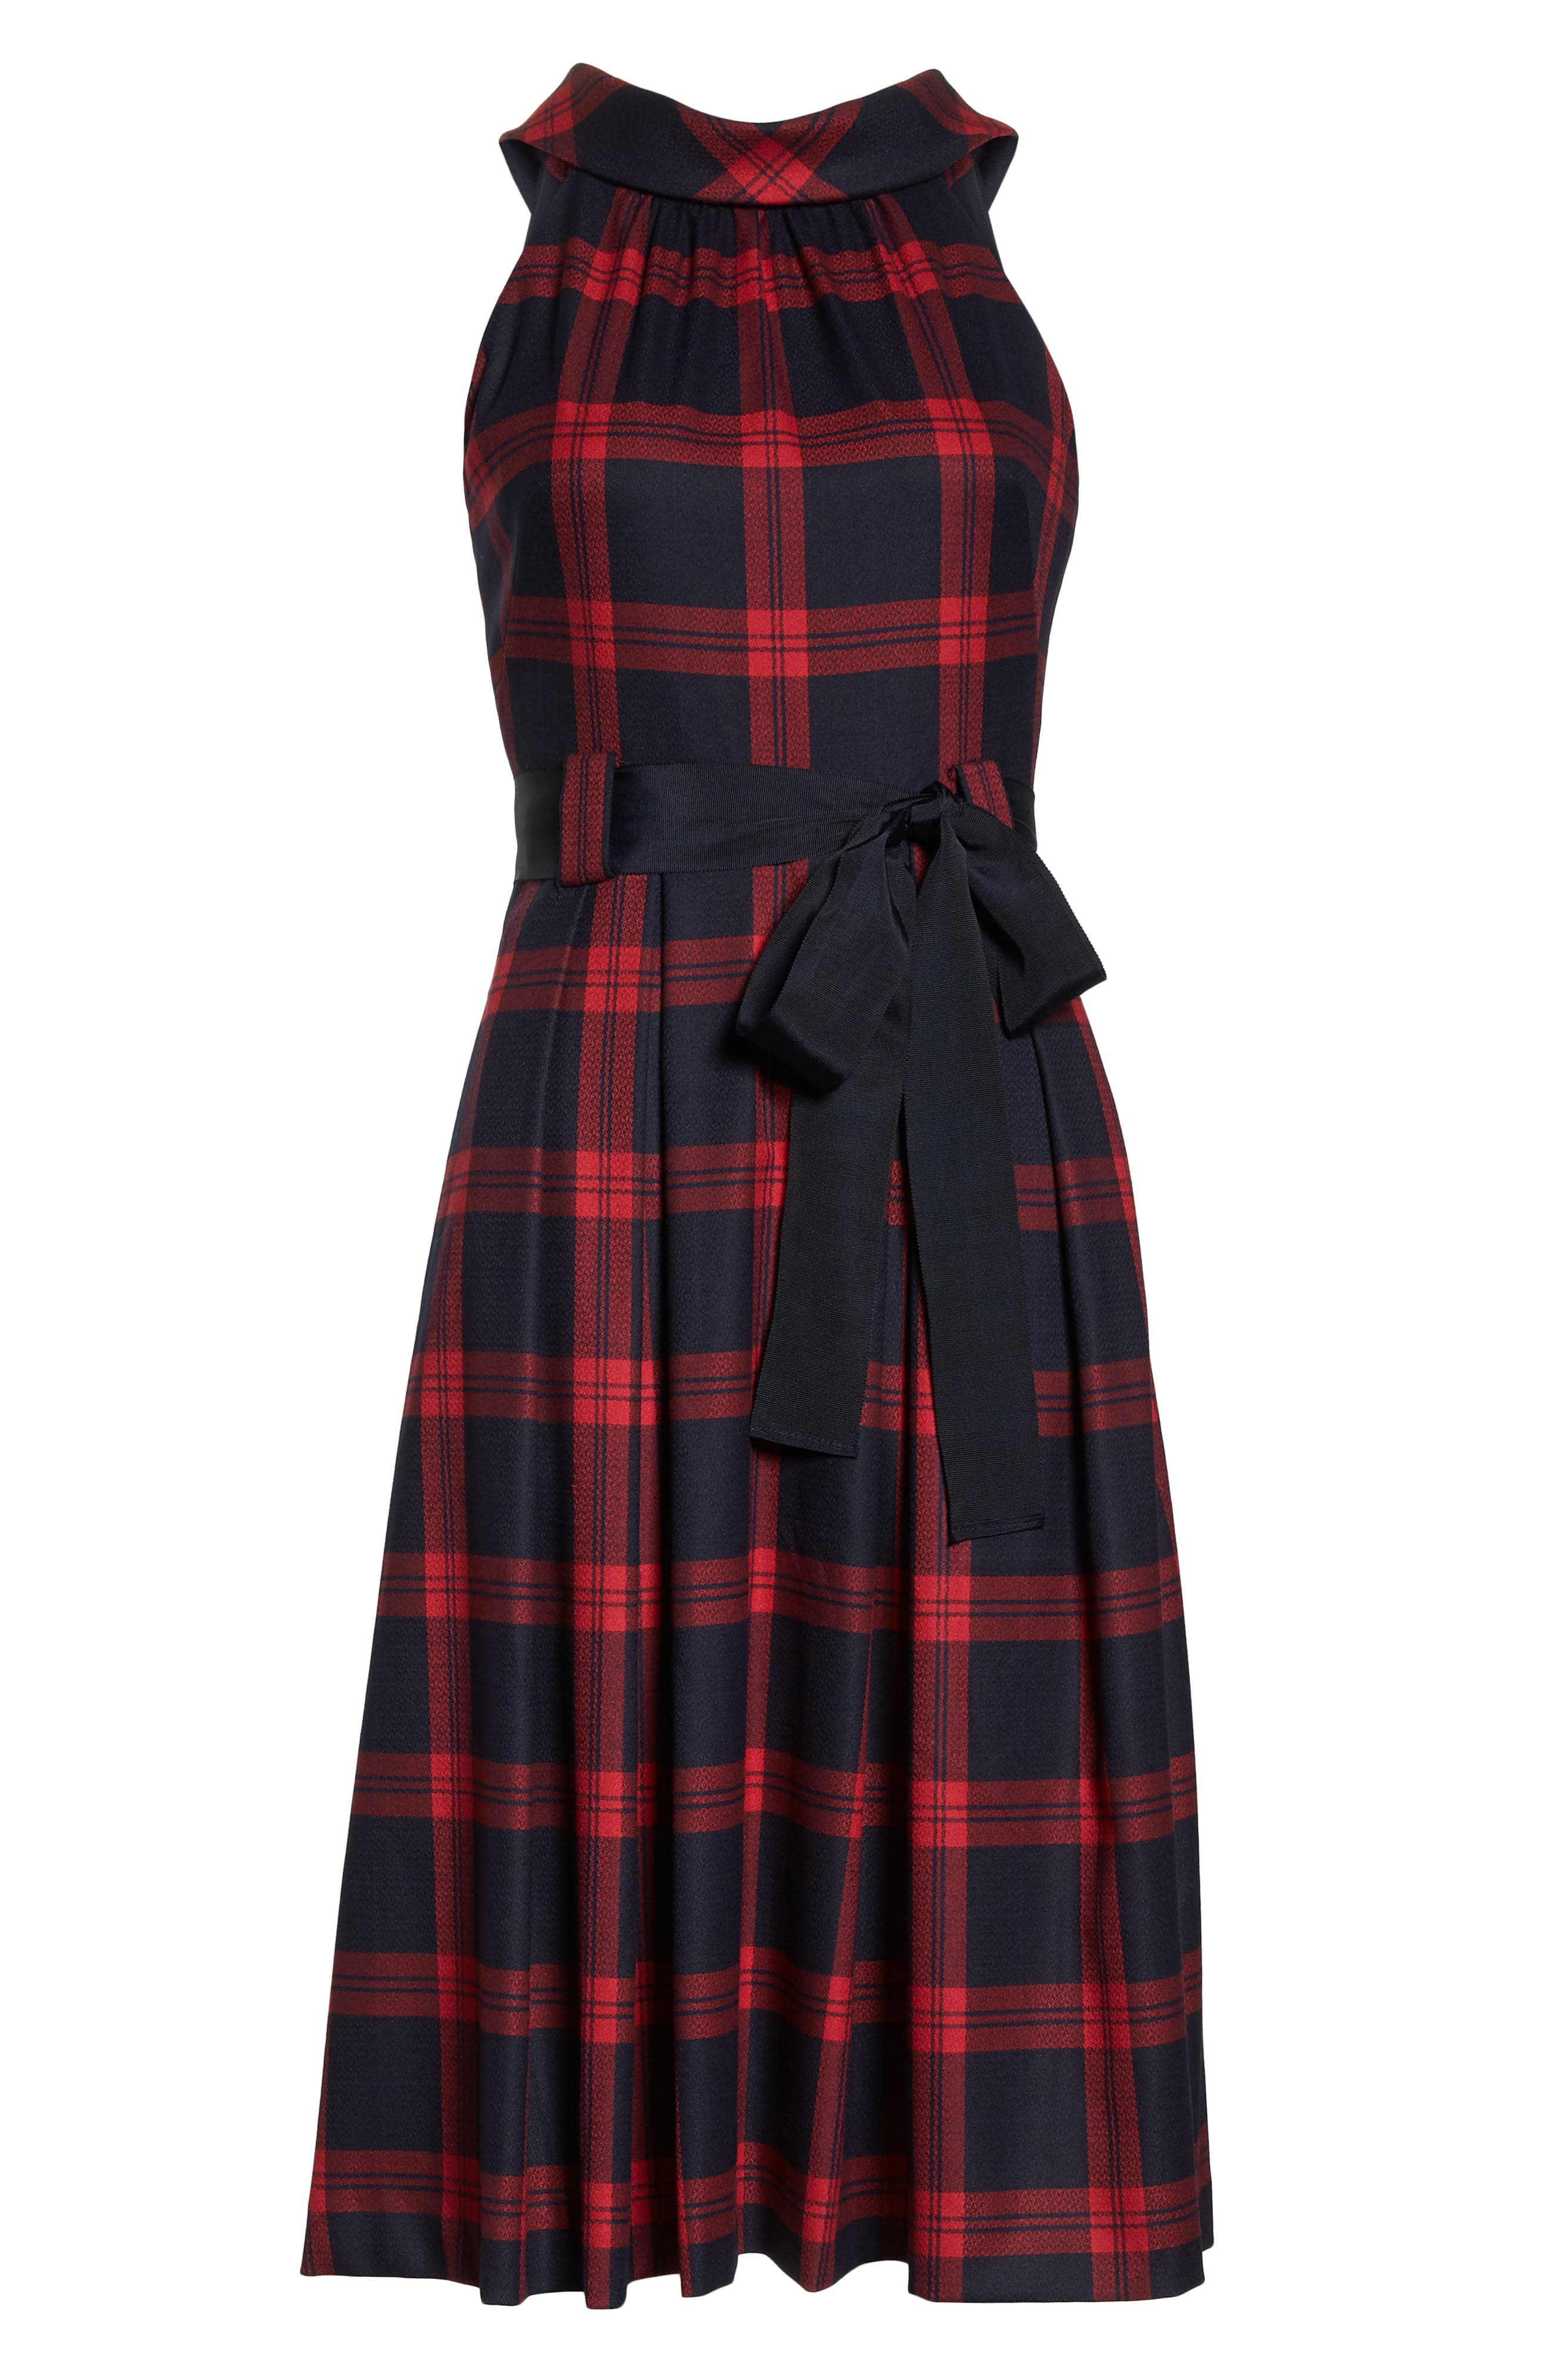 Jacquard Fit & Flare Dress,                             Alternate thumbnail 7, color,                             RED- NAVY PLAID